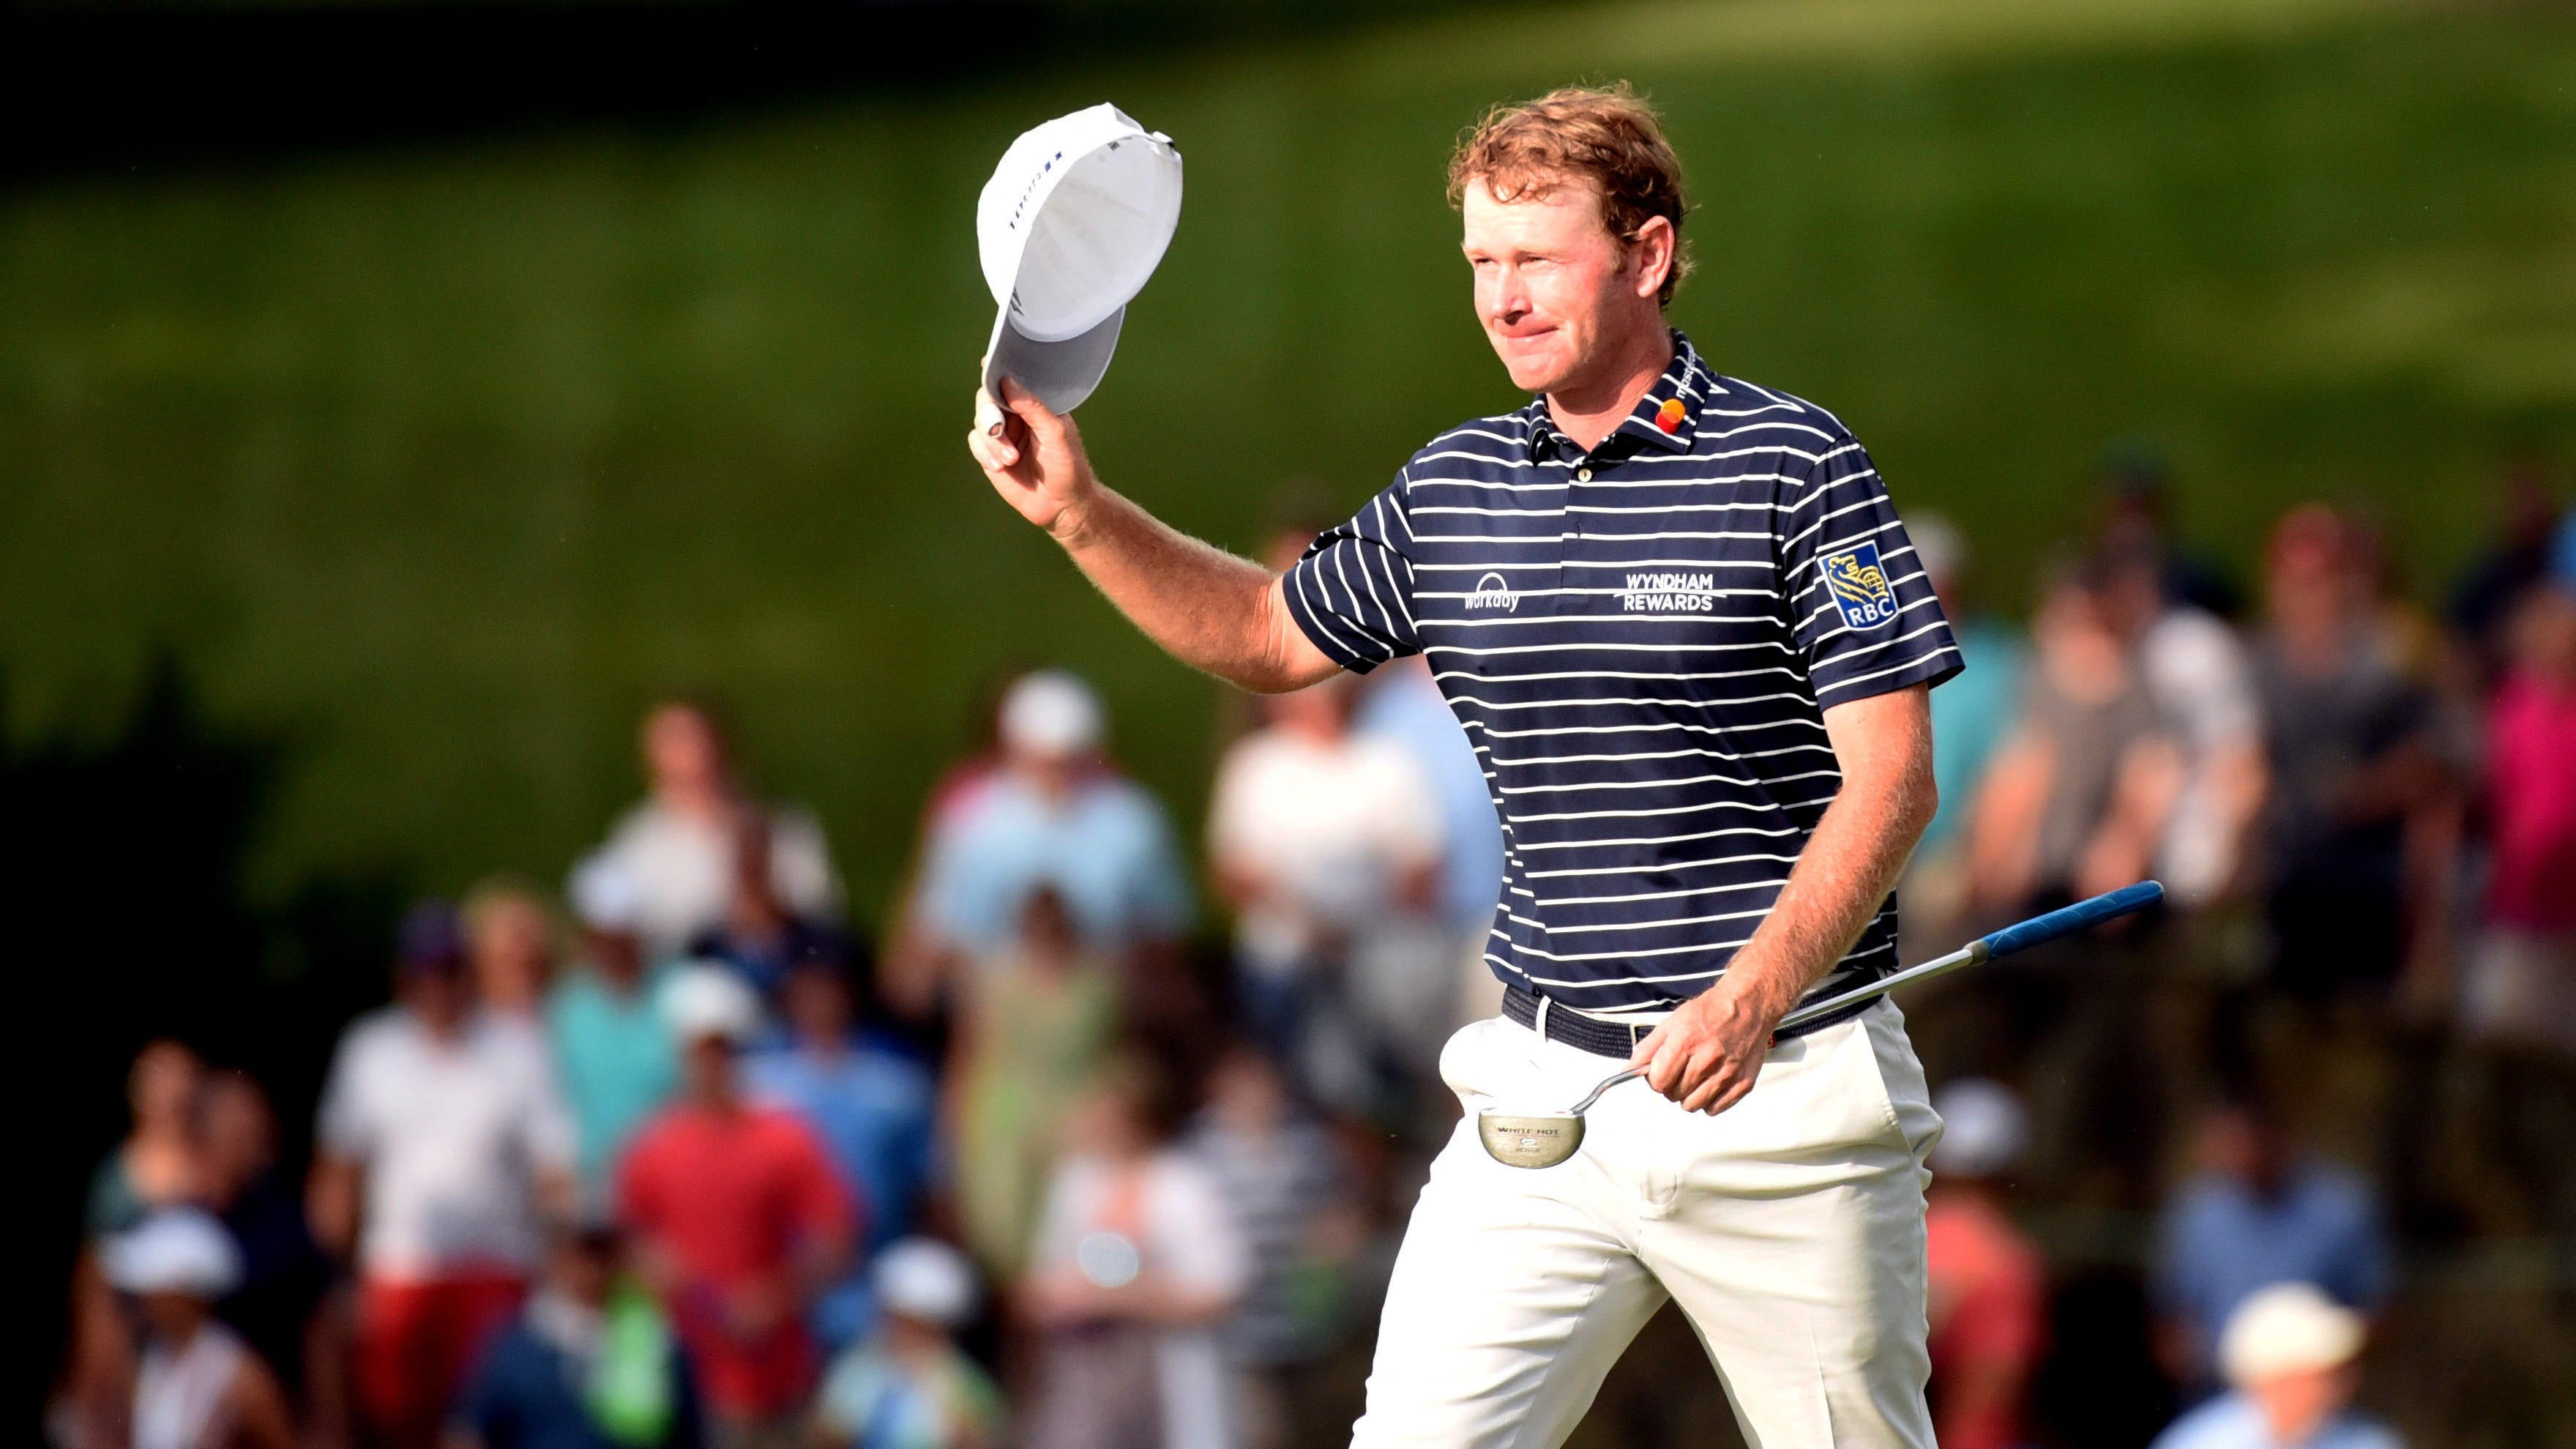 Brandt Snedeker looks to rebound after Safeway collapse as PGA Tour heads to Asia